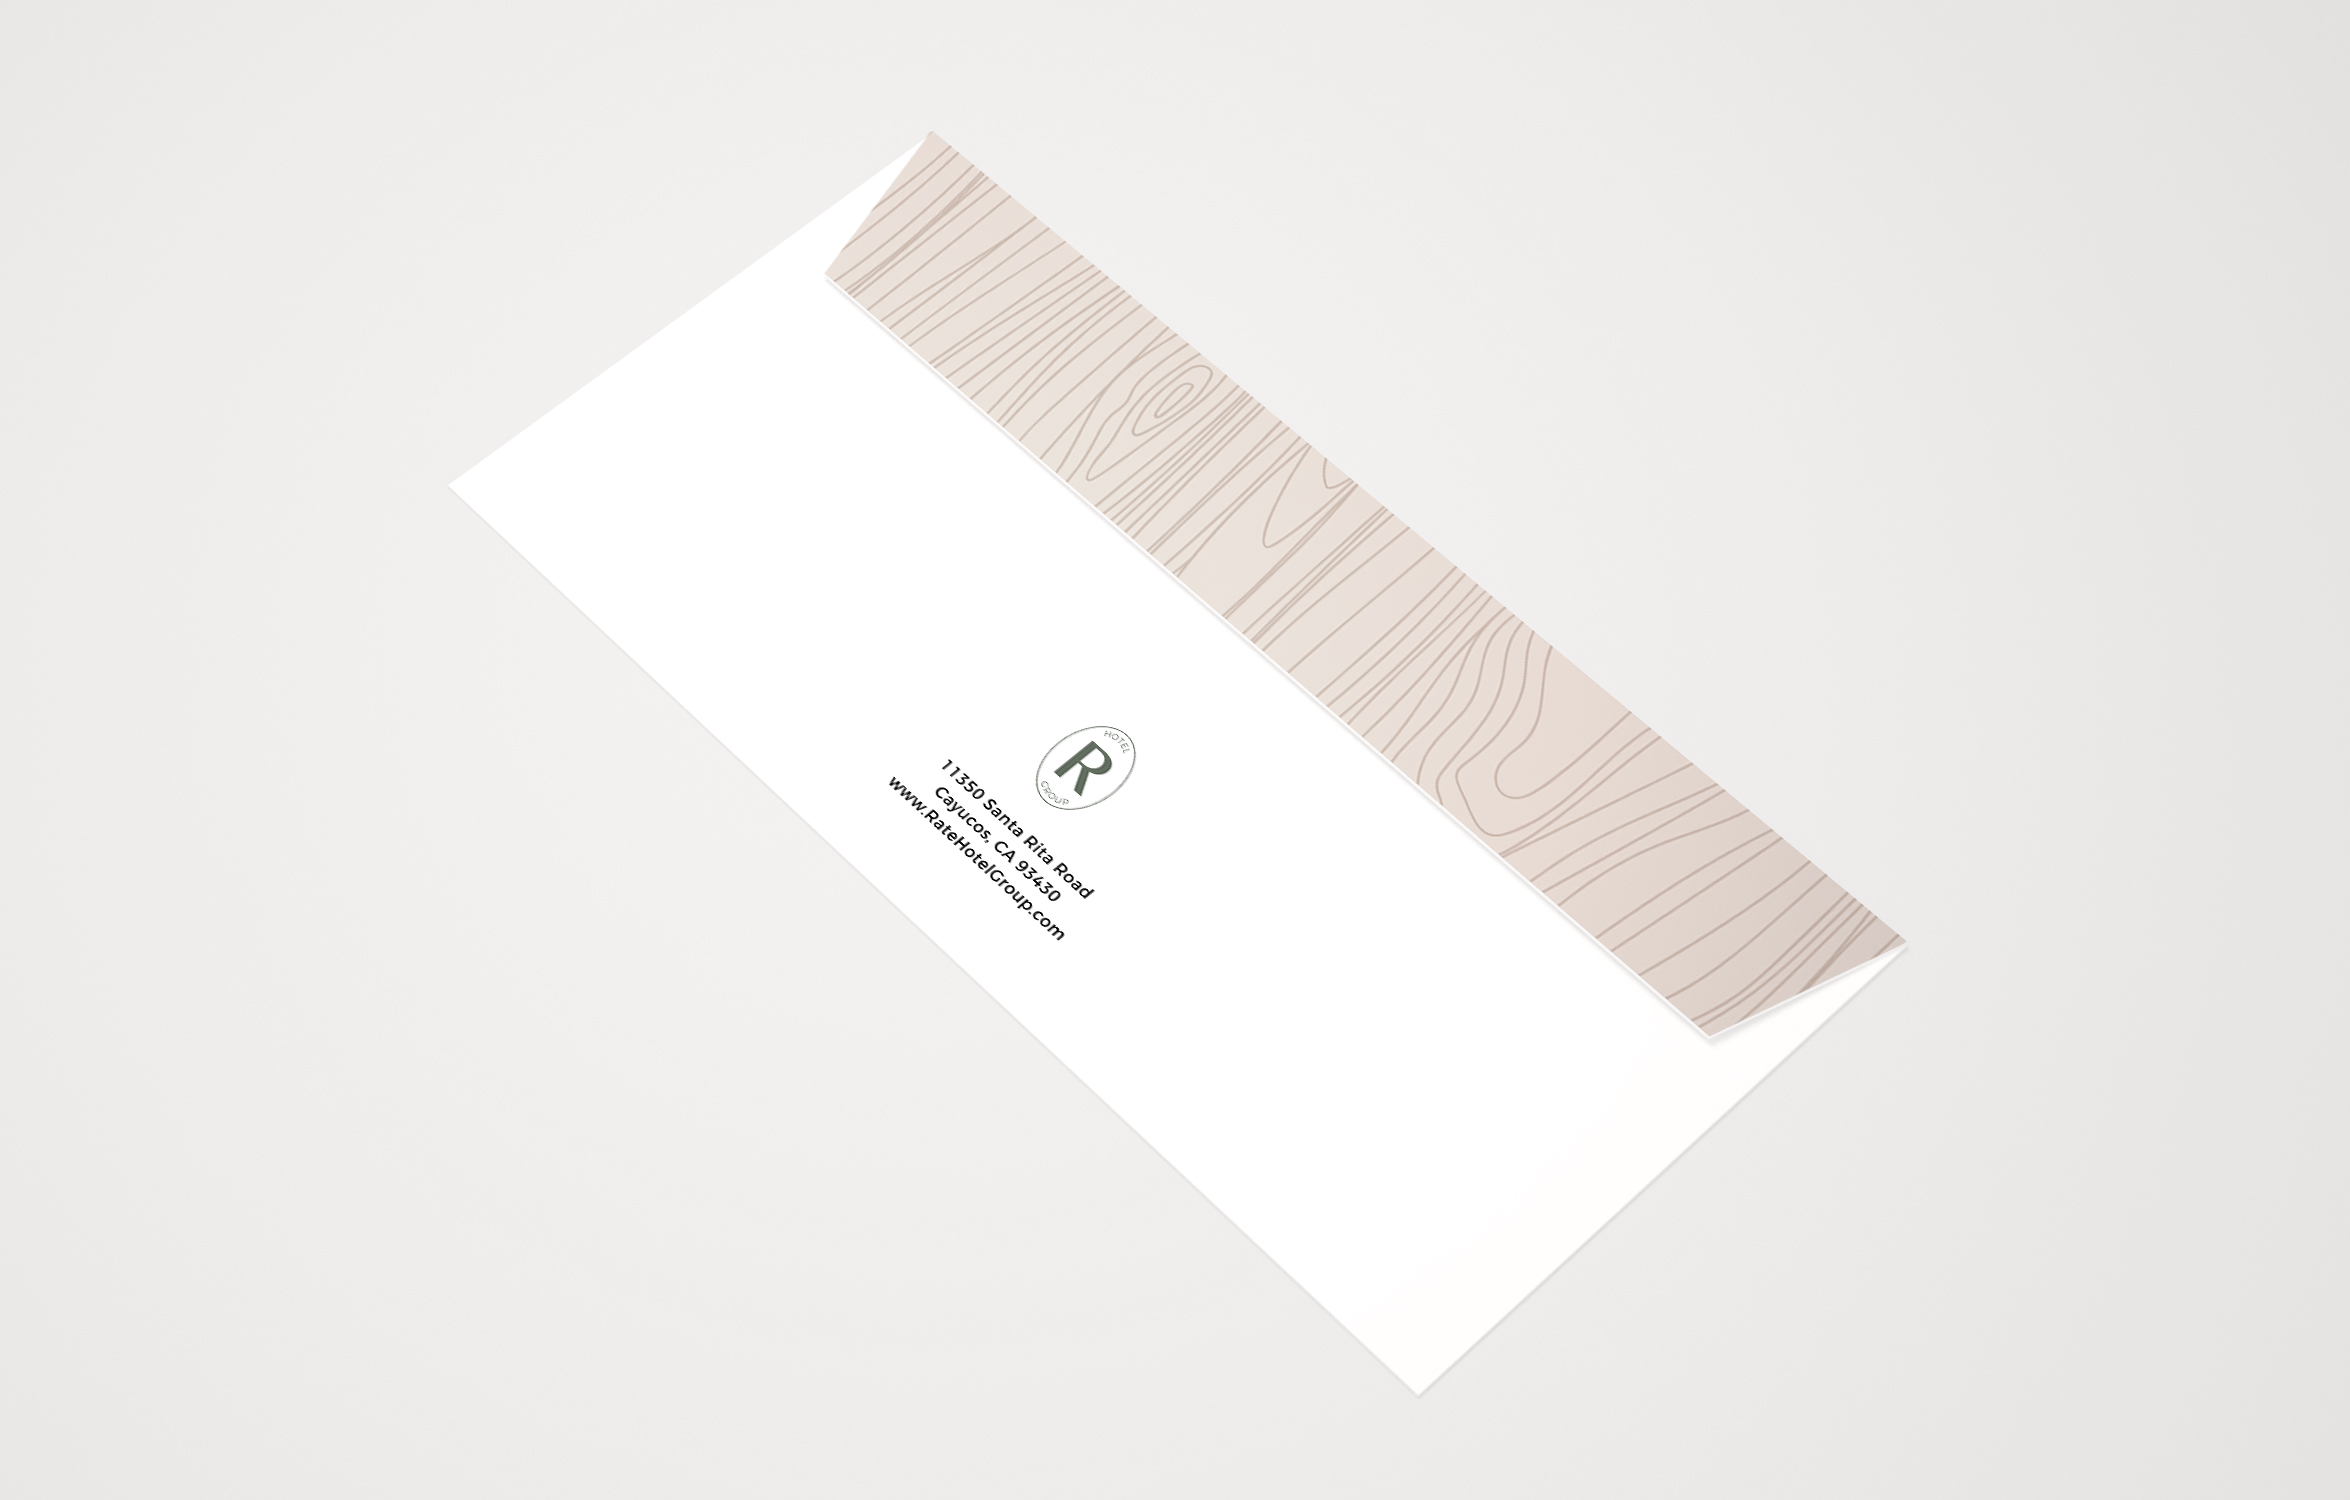 RATE Hotel Group Brand Design: Collateral Design   Reux Design Co.   Boutique Branding Studio for Holistic and Conscious Small Businesses